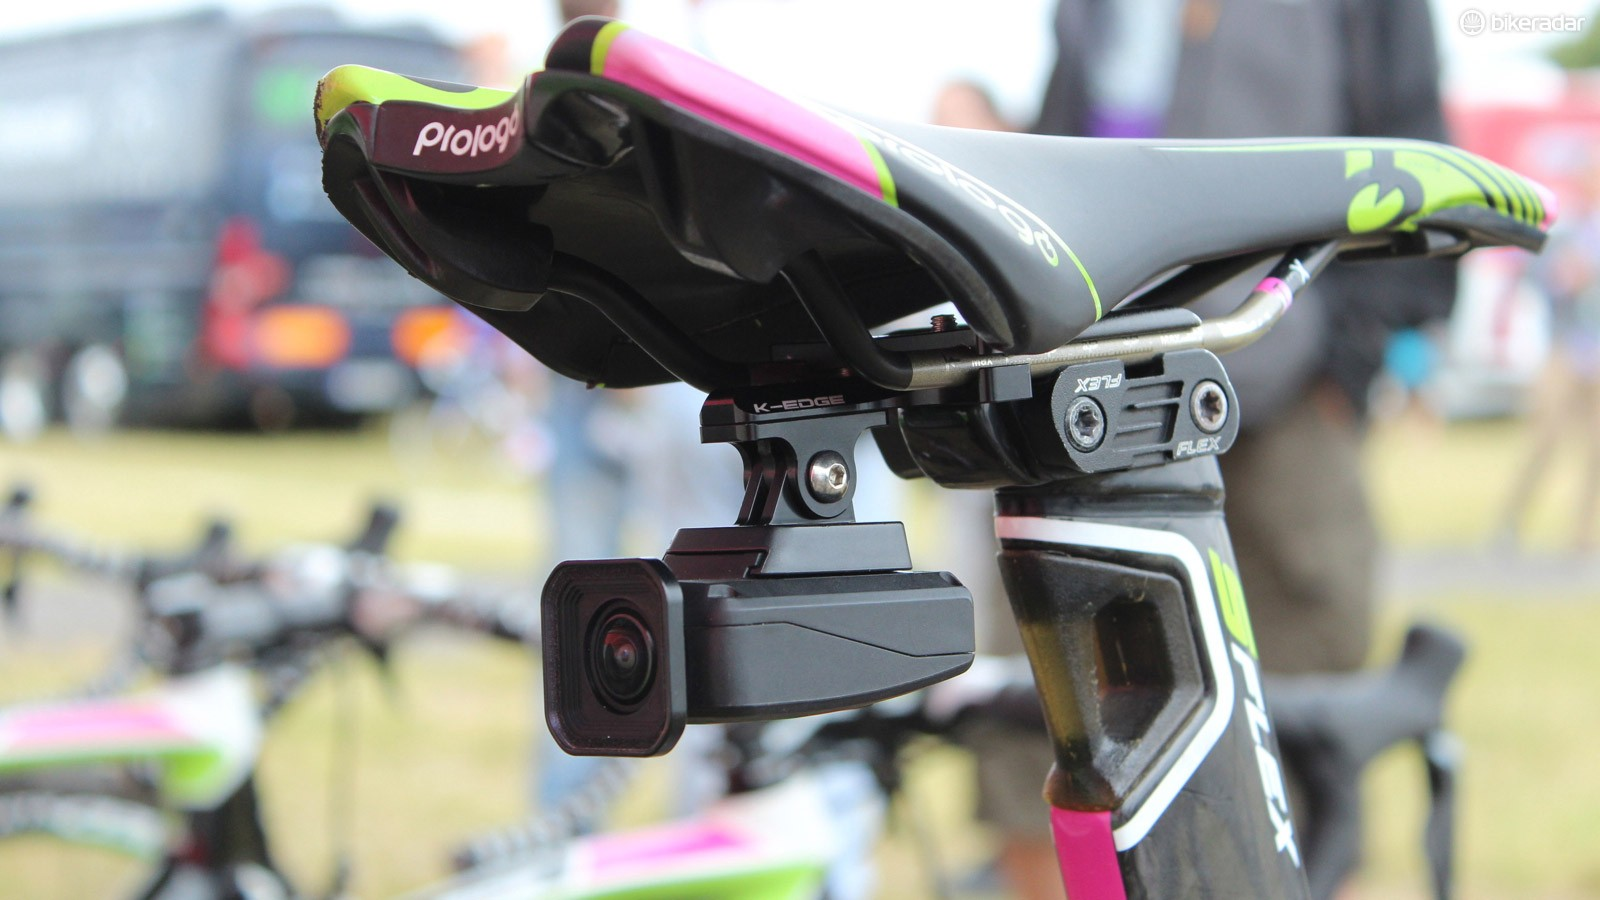 Shimano cameras are being used by most Shimano-sponsored teams